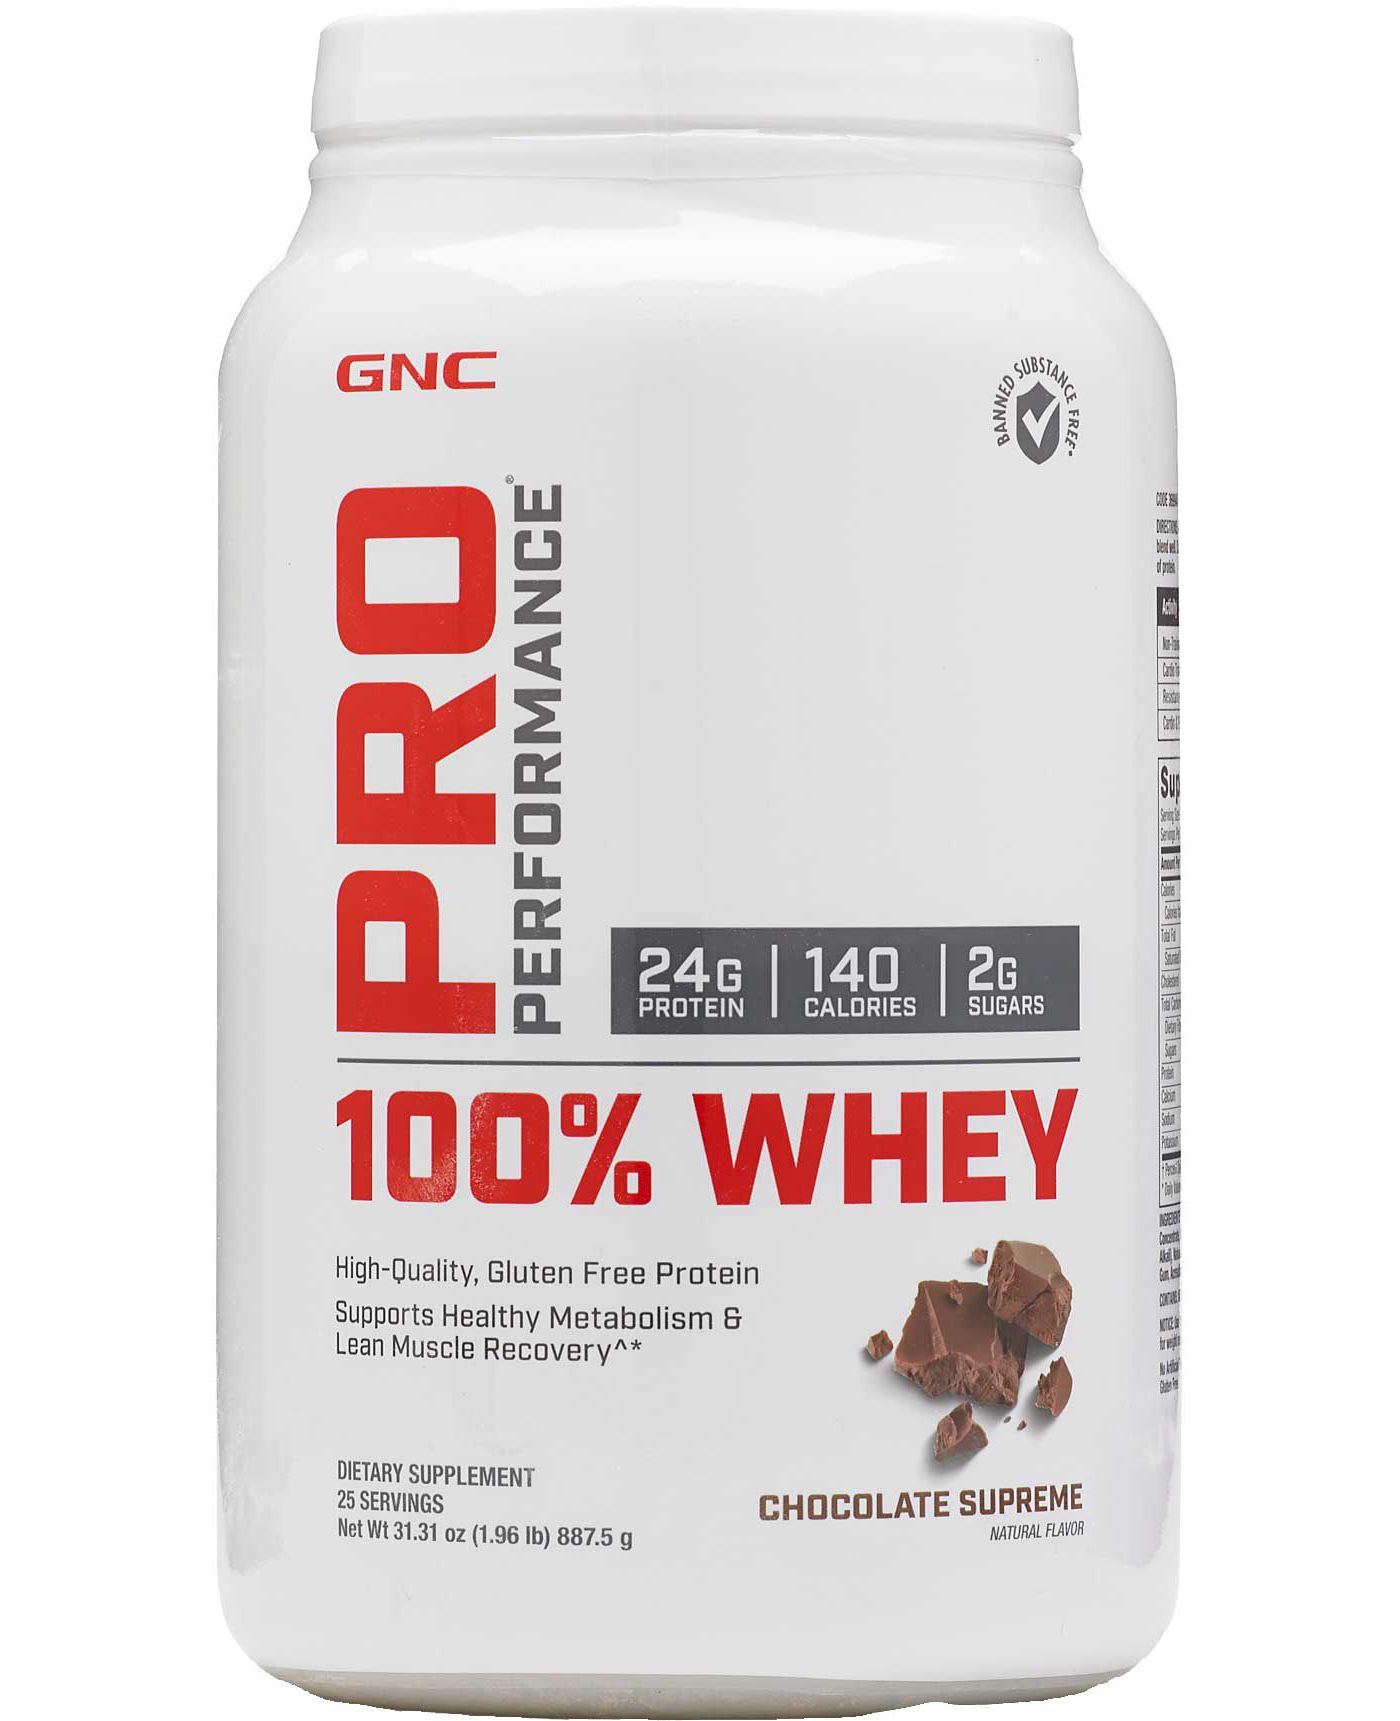 GNC Pro Performance 100% Whey Protein Chocolate Supreme 25 Servings